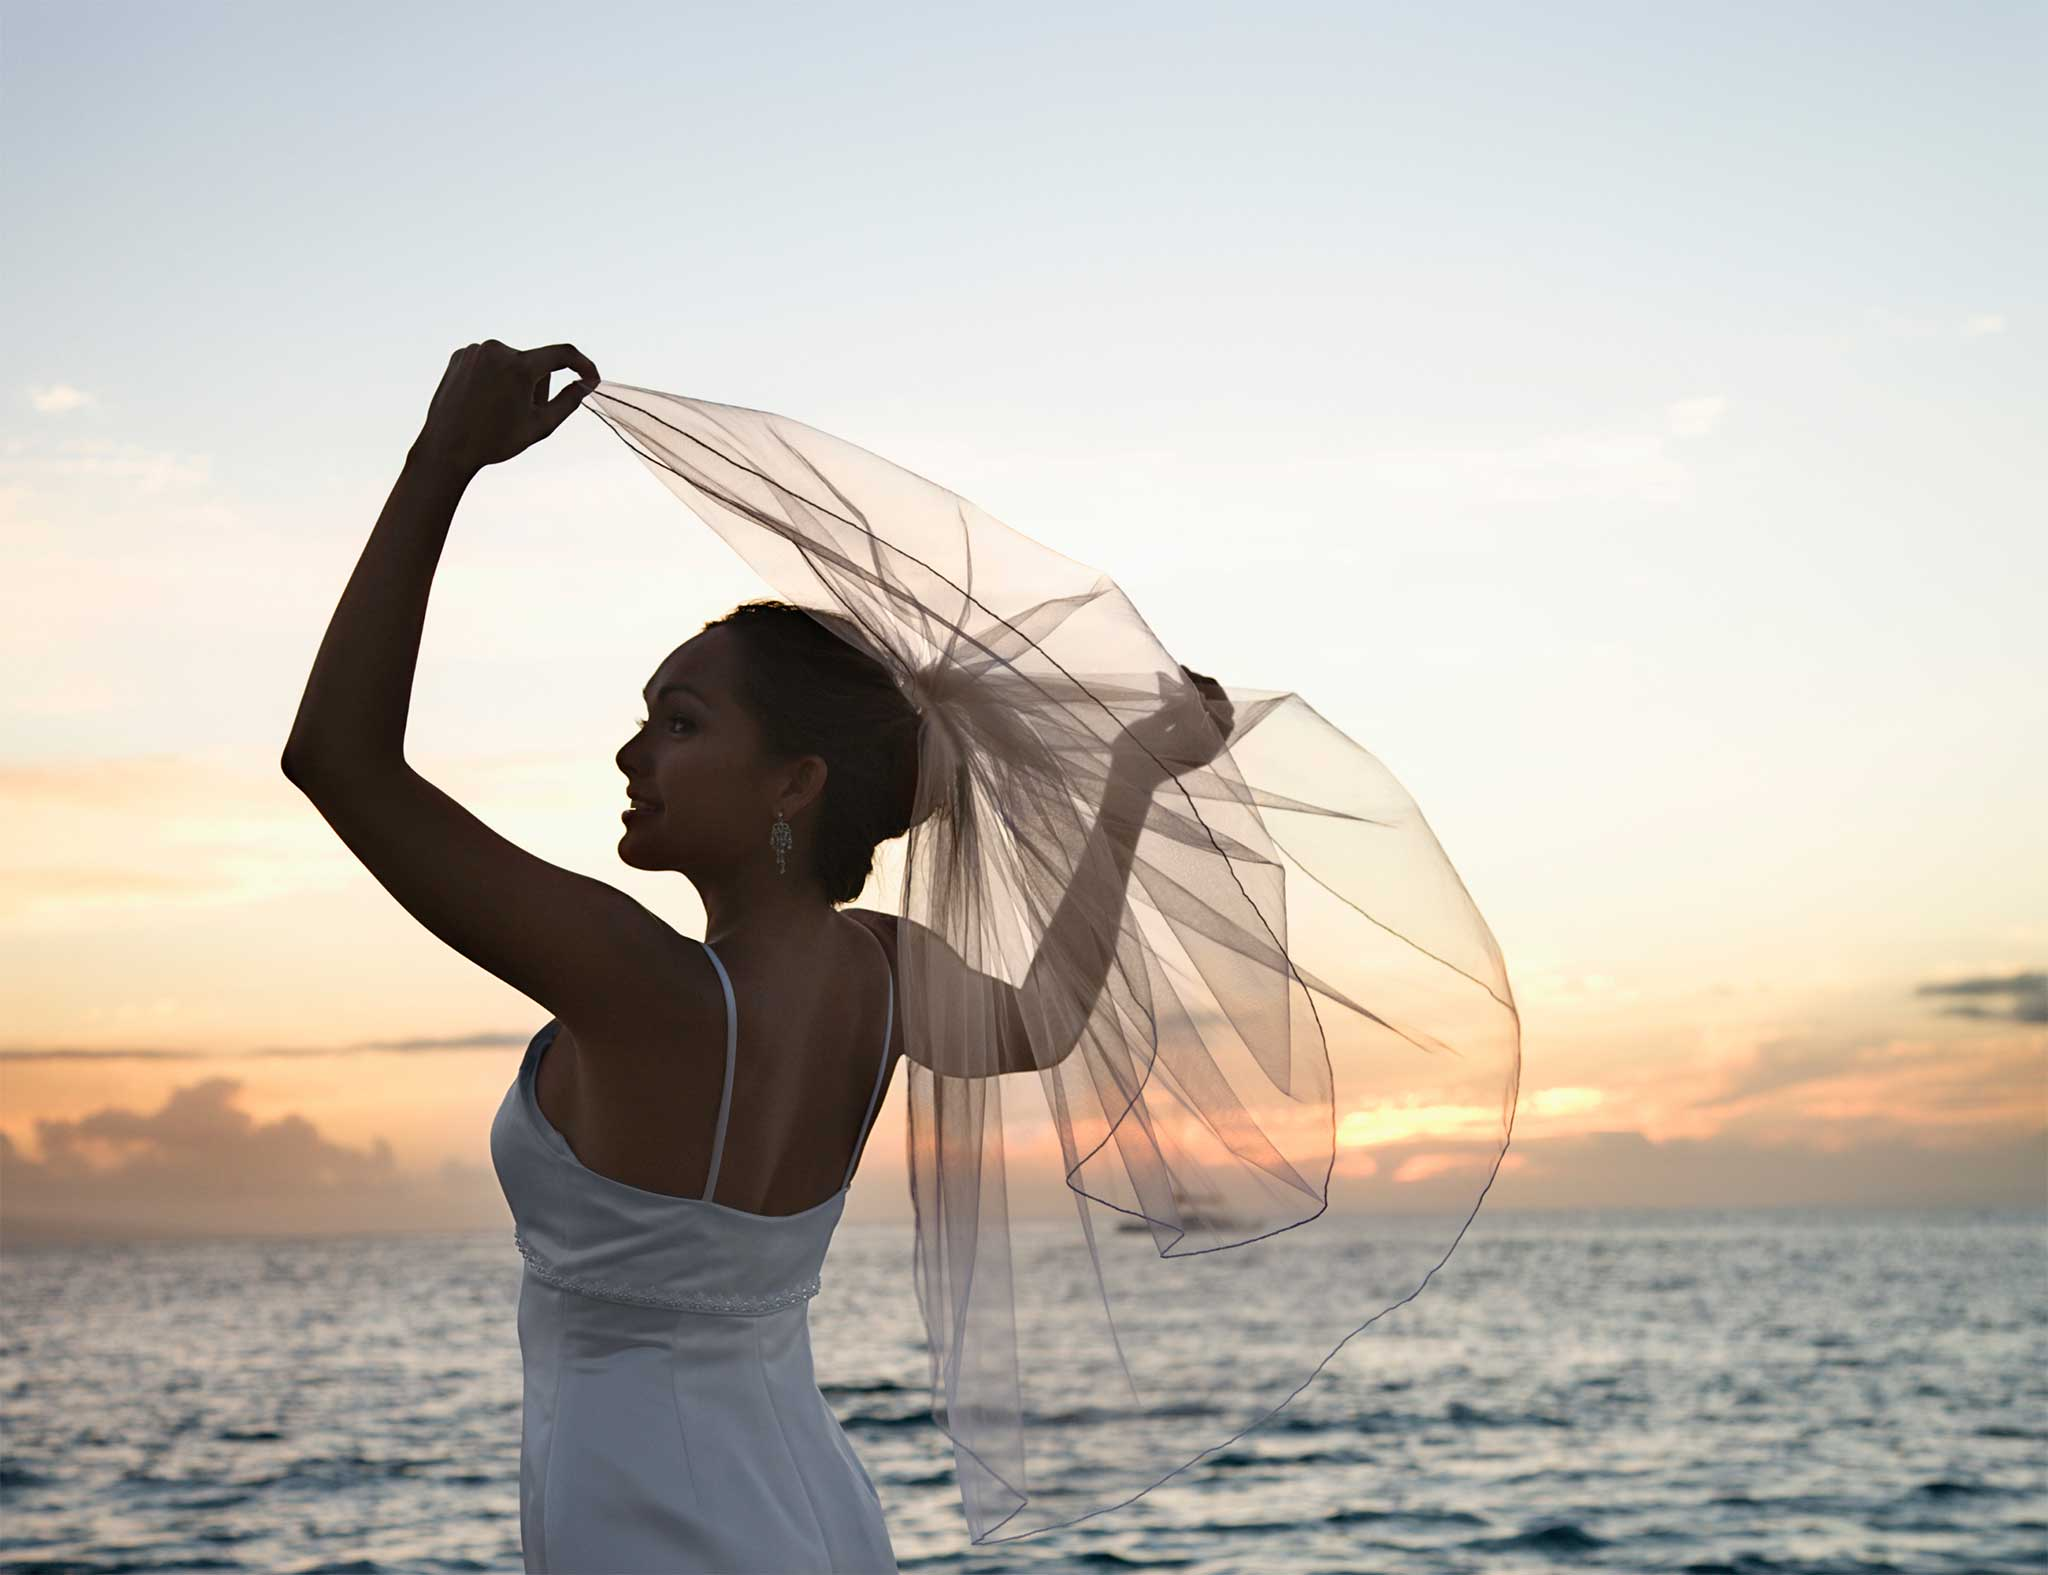 WEDDINGS ABROAD ITALY, HOW MUCH DO YOU KNOW ABOUT VEILS?